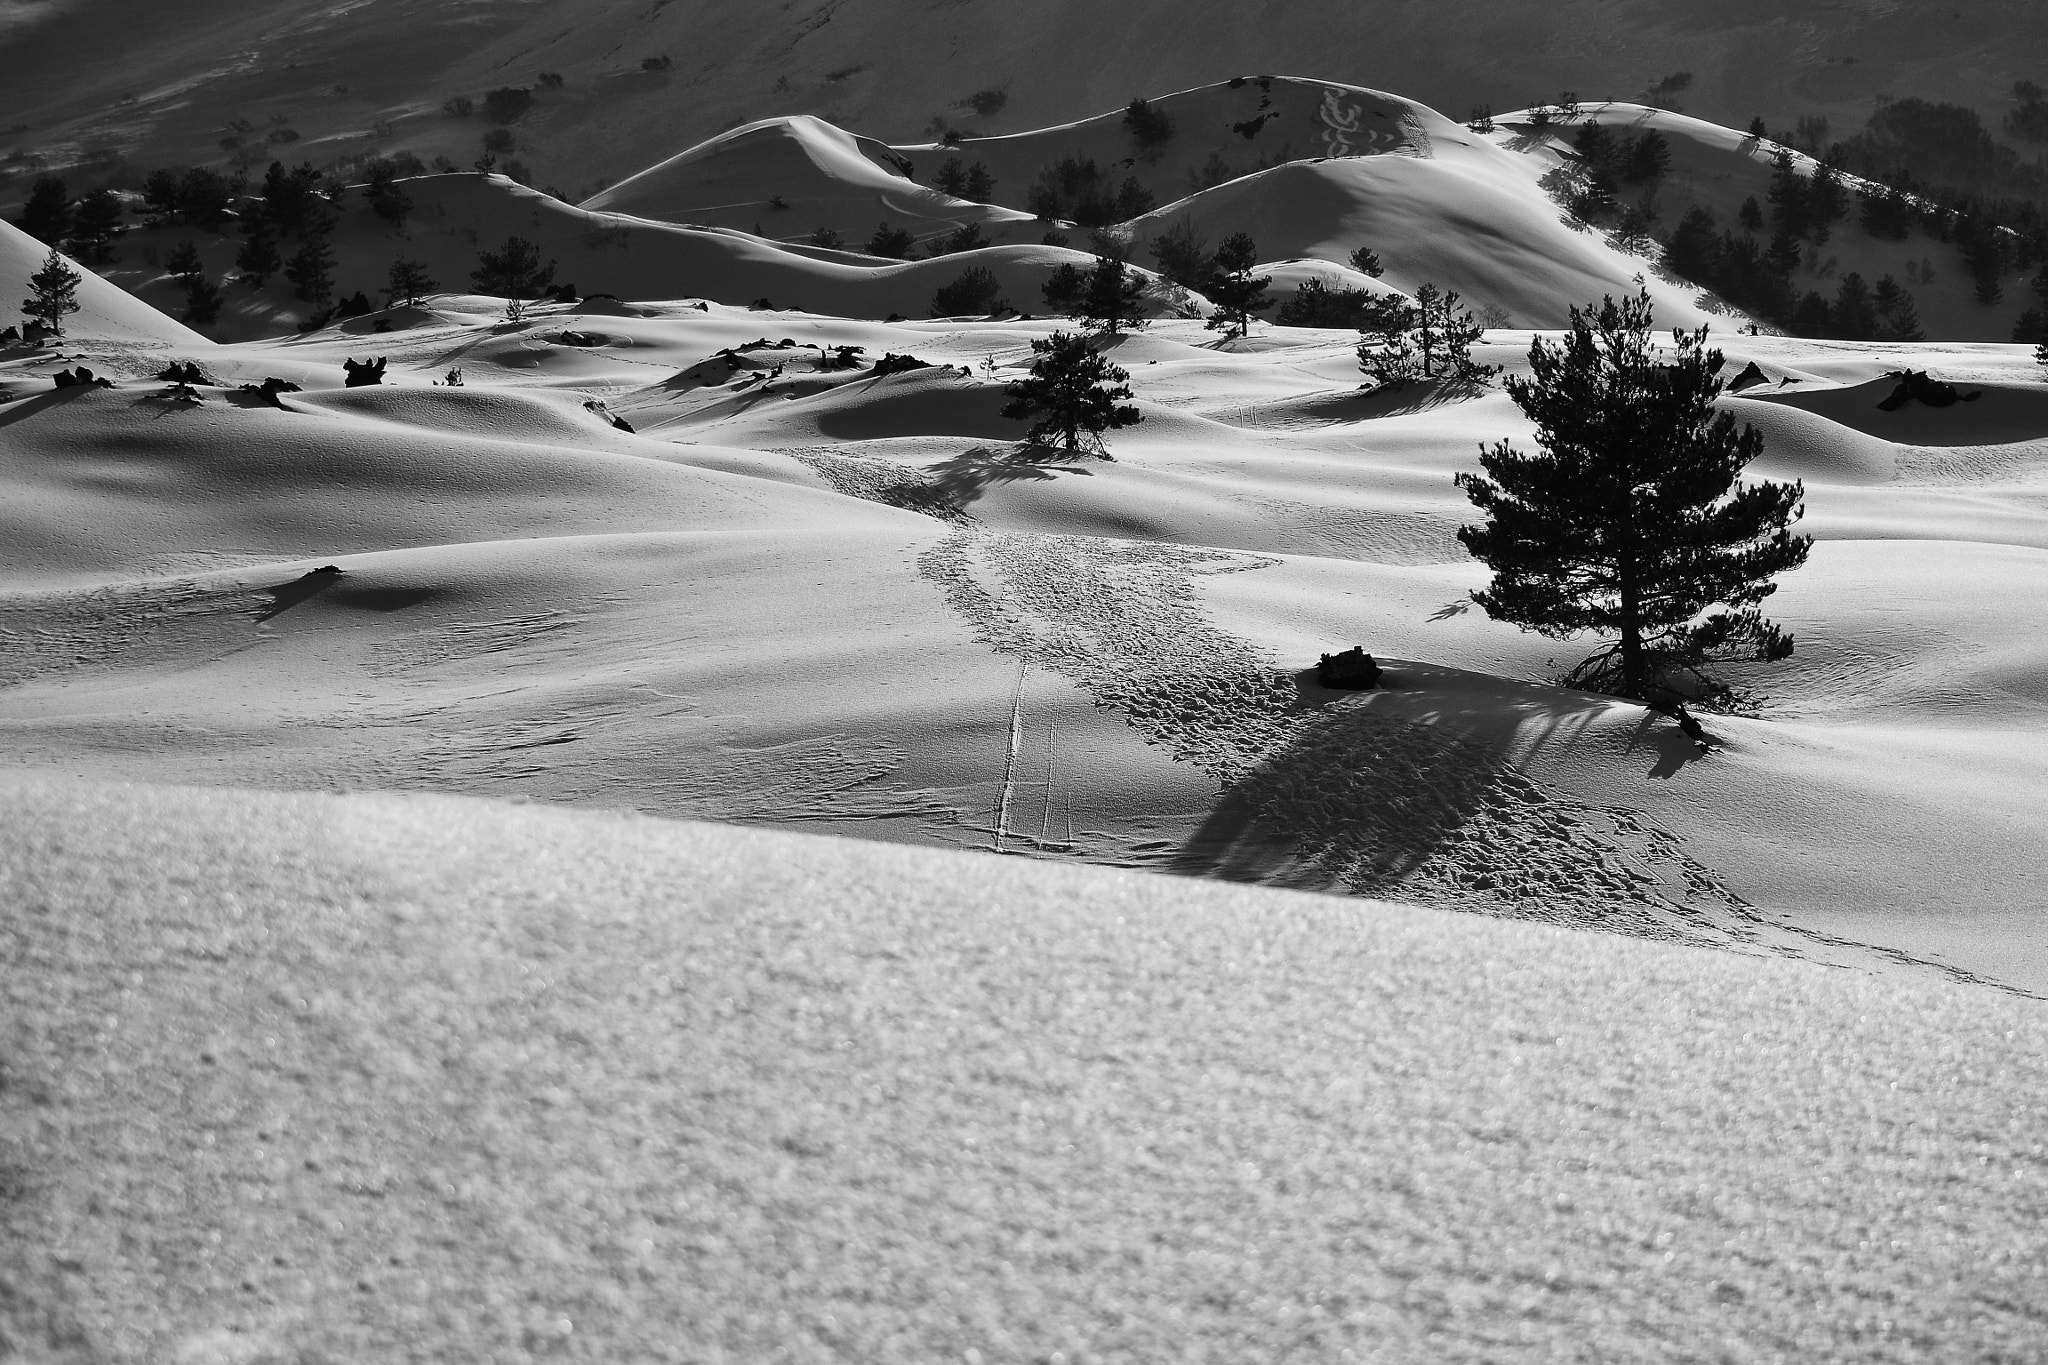 Photograph Snow land by Salvo Mangiaglia on 500px